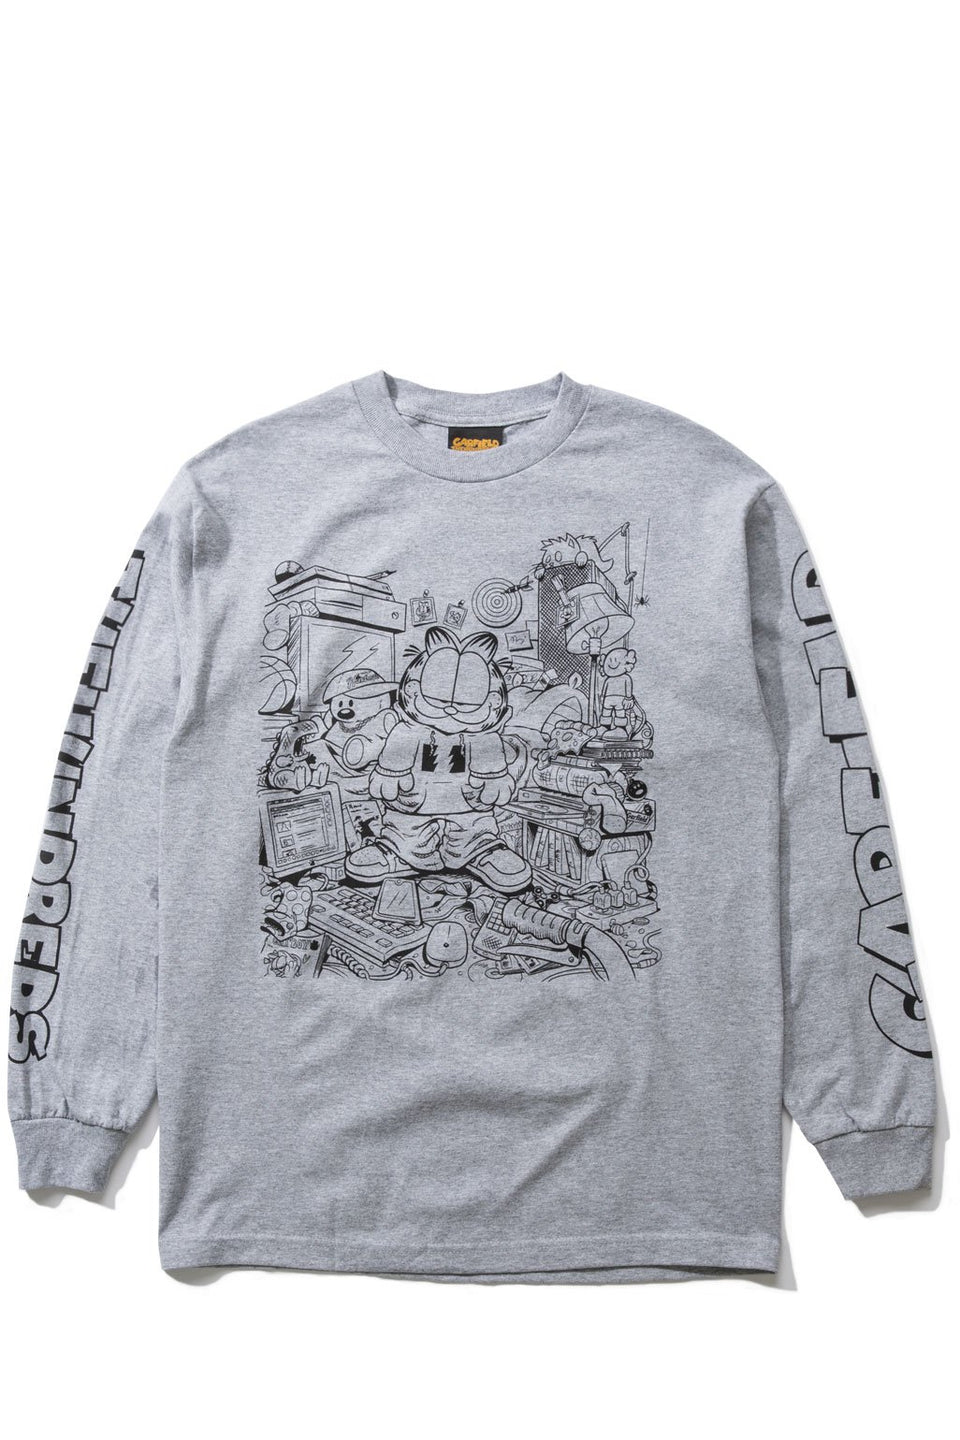 Messy Garfield L/S Shirt